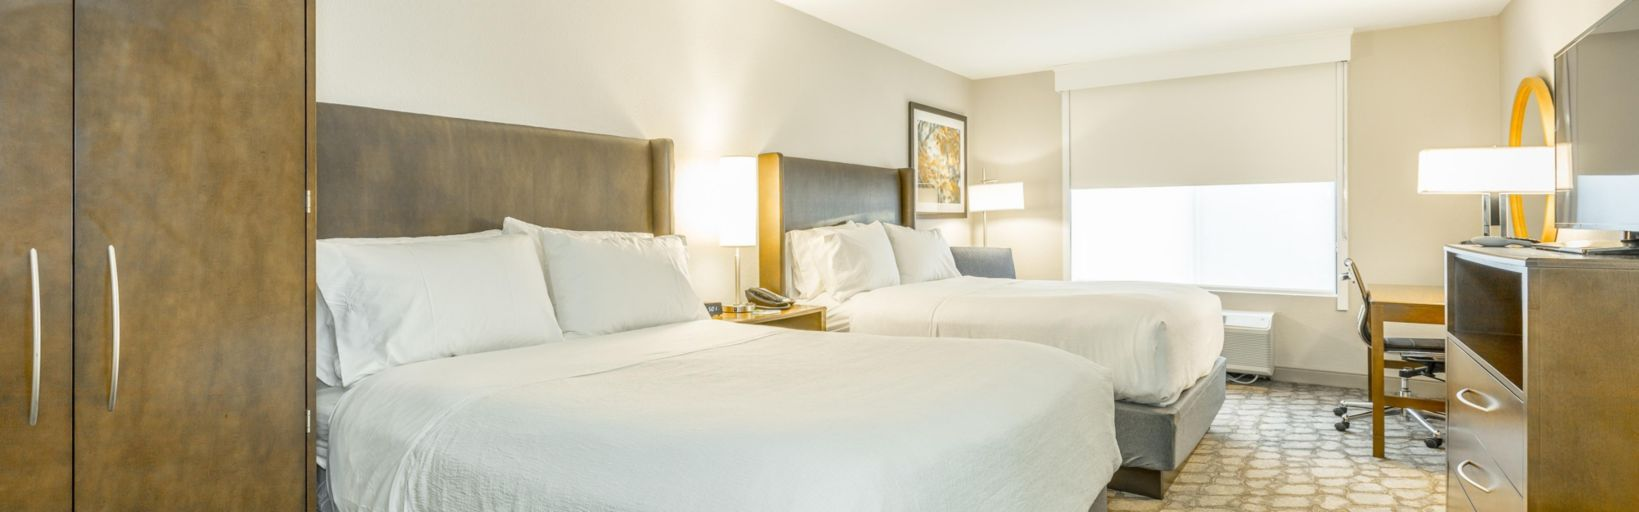 Holiday Inn Hotel & Suites Peachtree City - Hotel Reviews & Photos